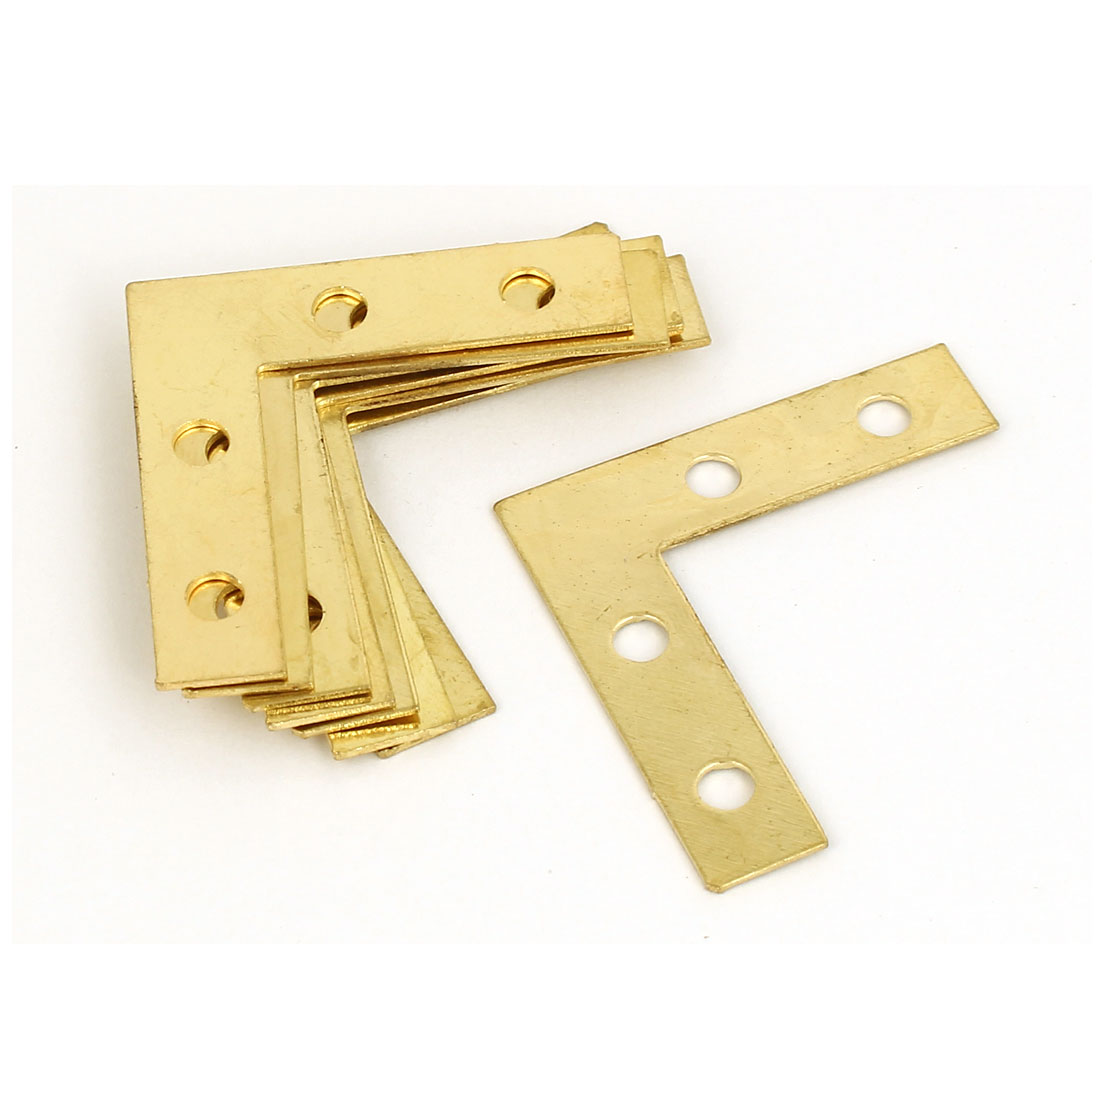 38mm x 38mm Metal Angle Brackets Flat L Shape Repair Plates 8PCS